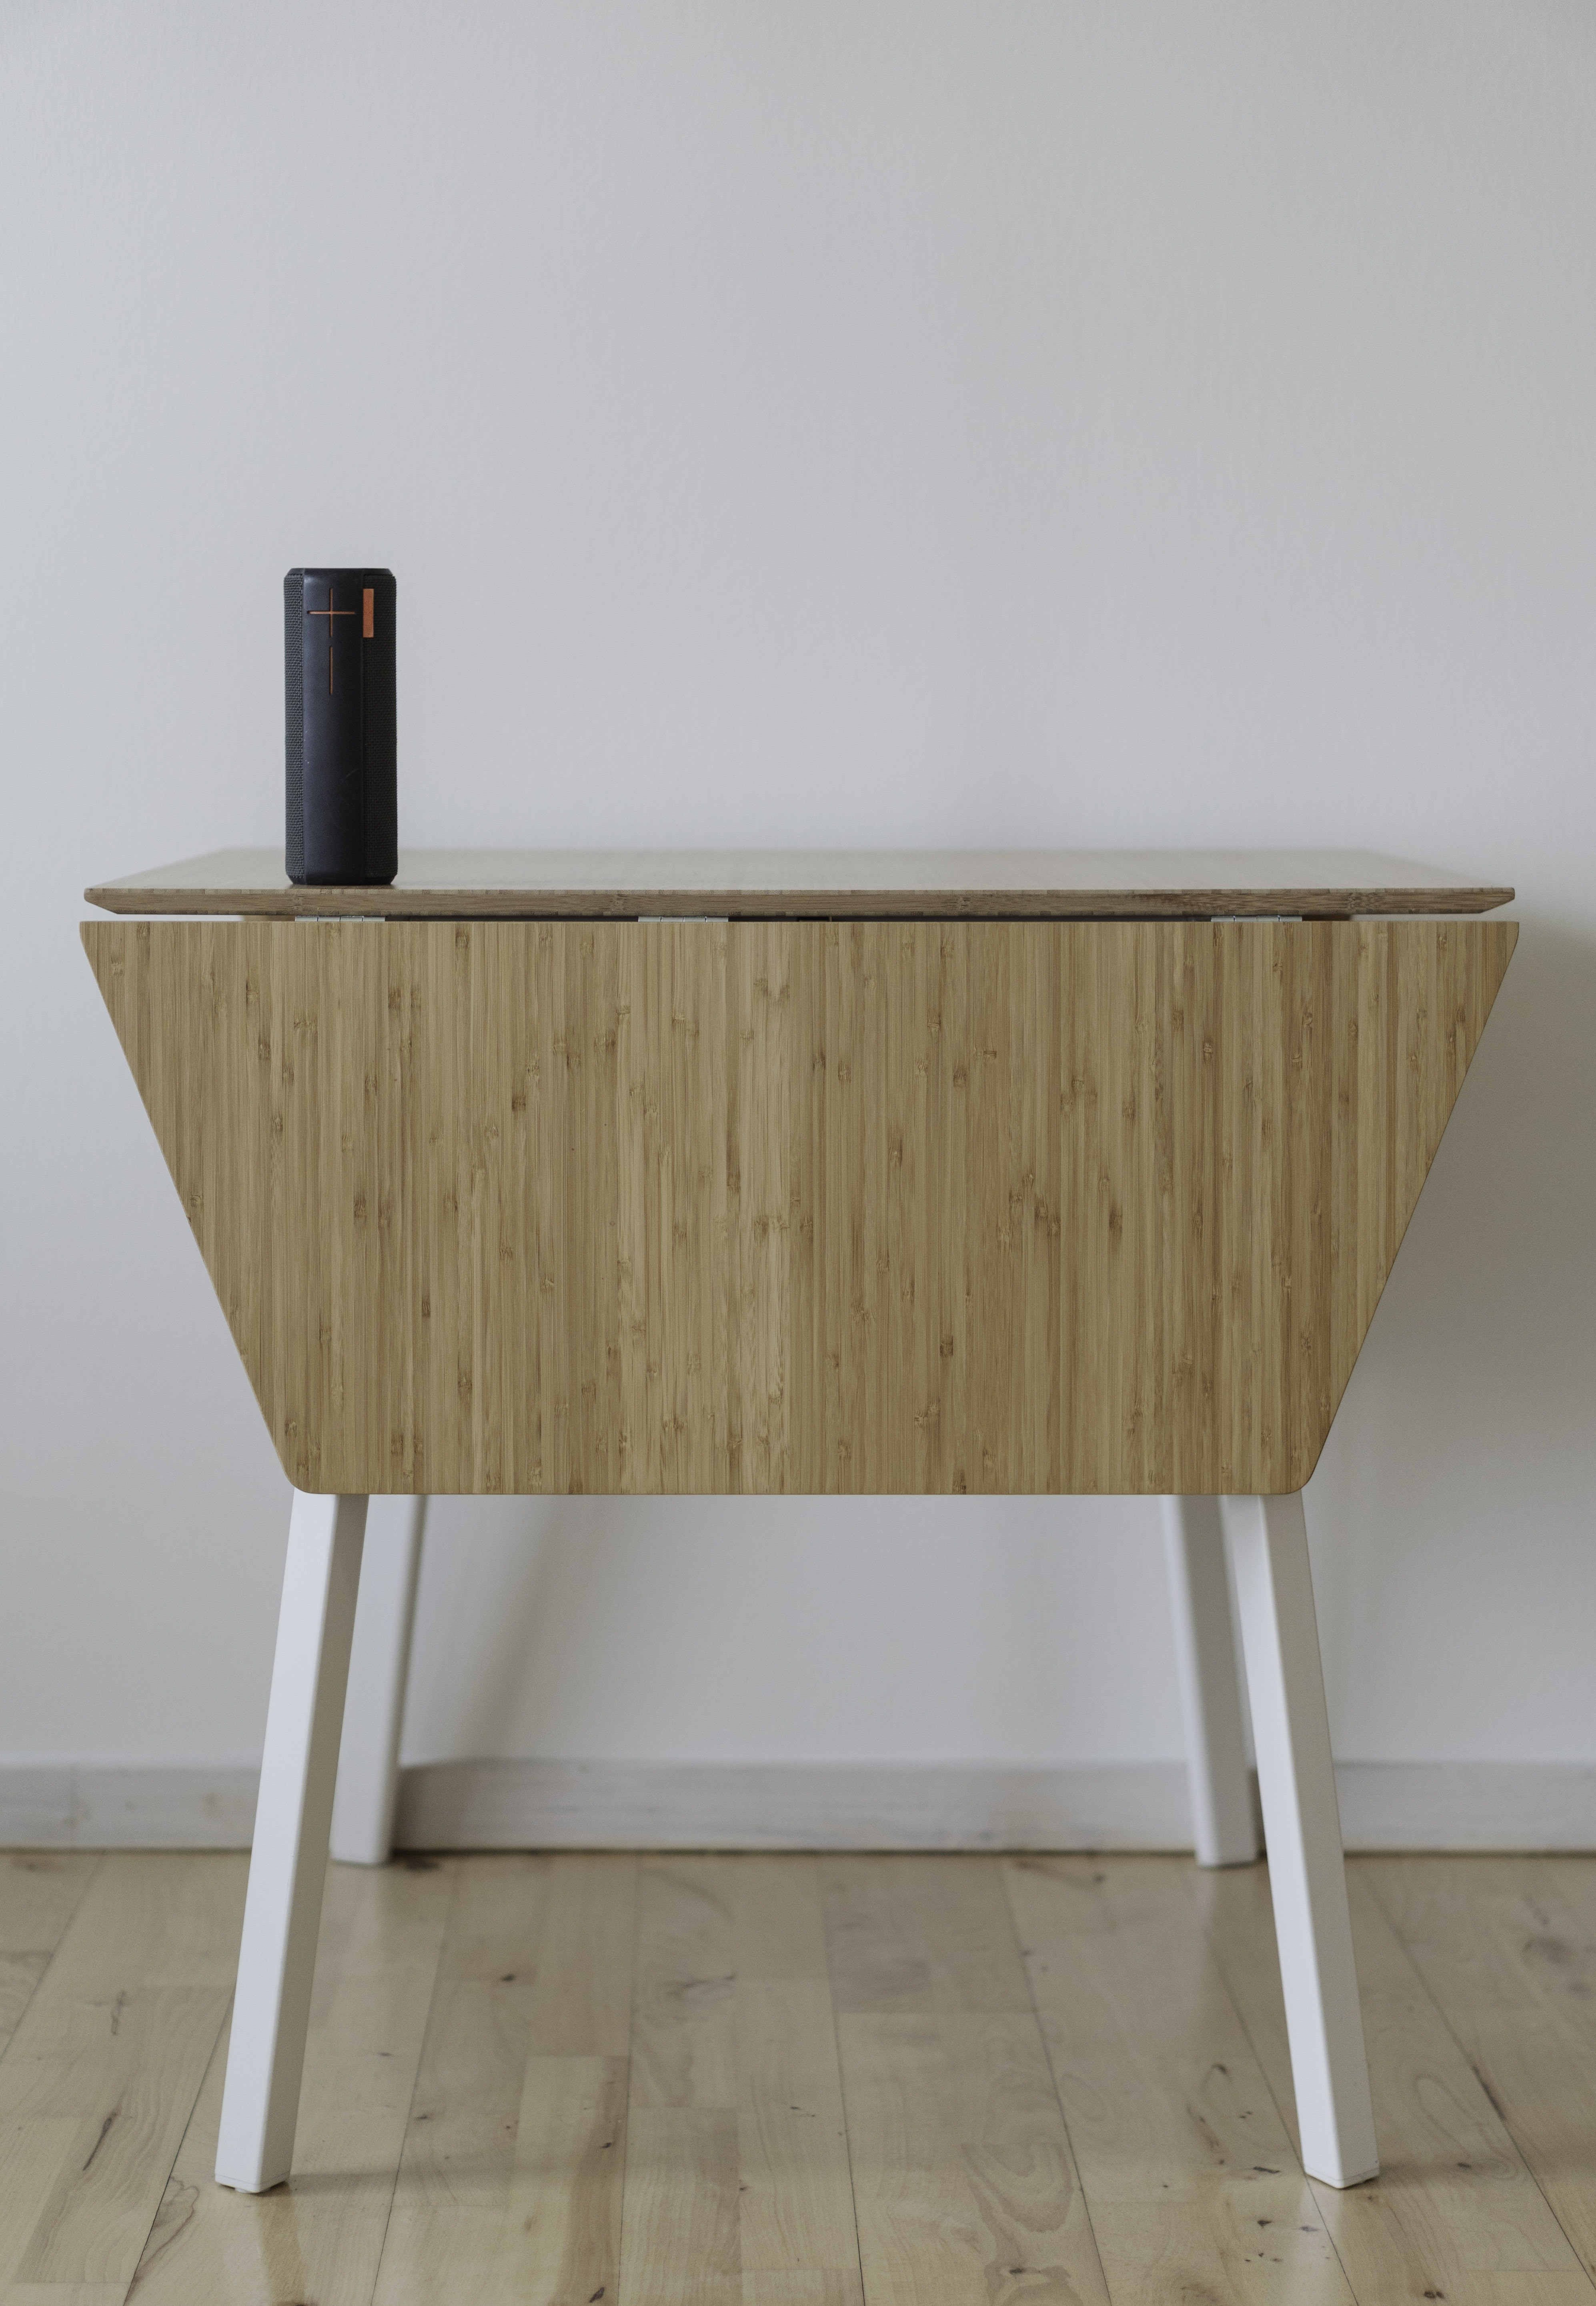 black Bluetooth speaker on top of brown wooden drop leaf table